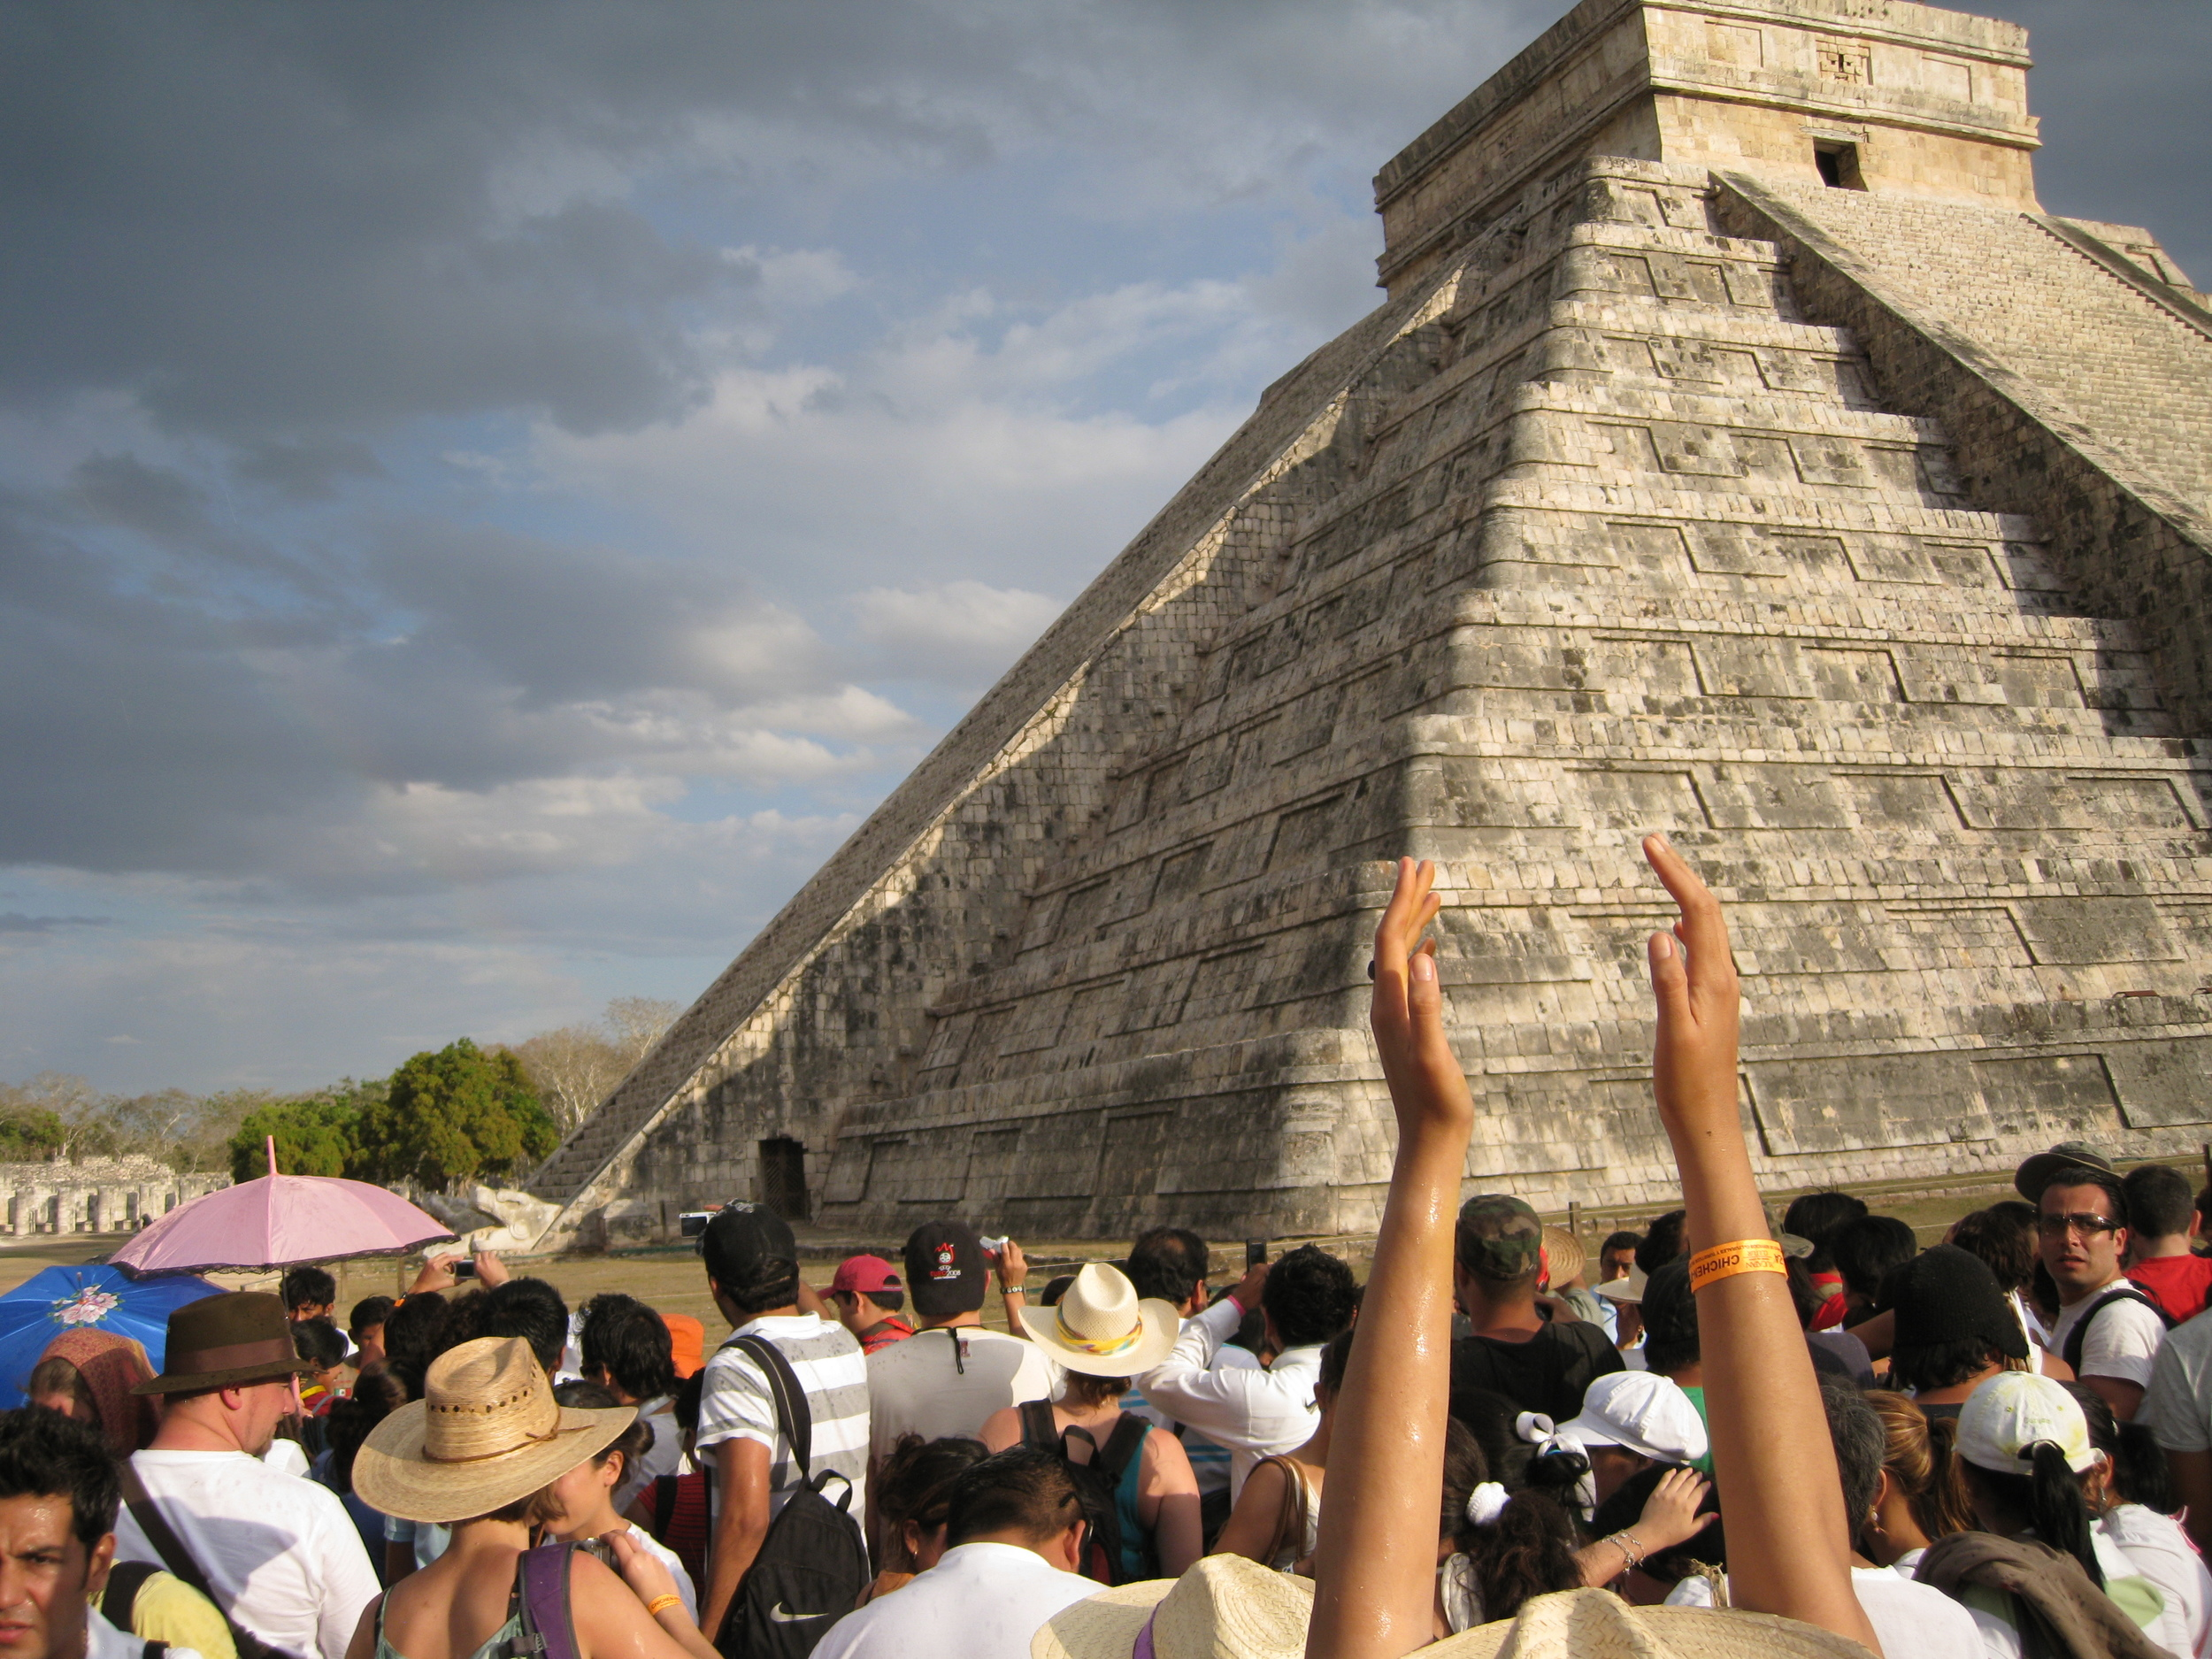 An image of Chichén Itzá - Yucatan,Mexico. Pre-Columbian Mayan Architecture.Image by Bmamlin -Clapping in specific parts if the courtyard triggers chirp-like flutter echoes.